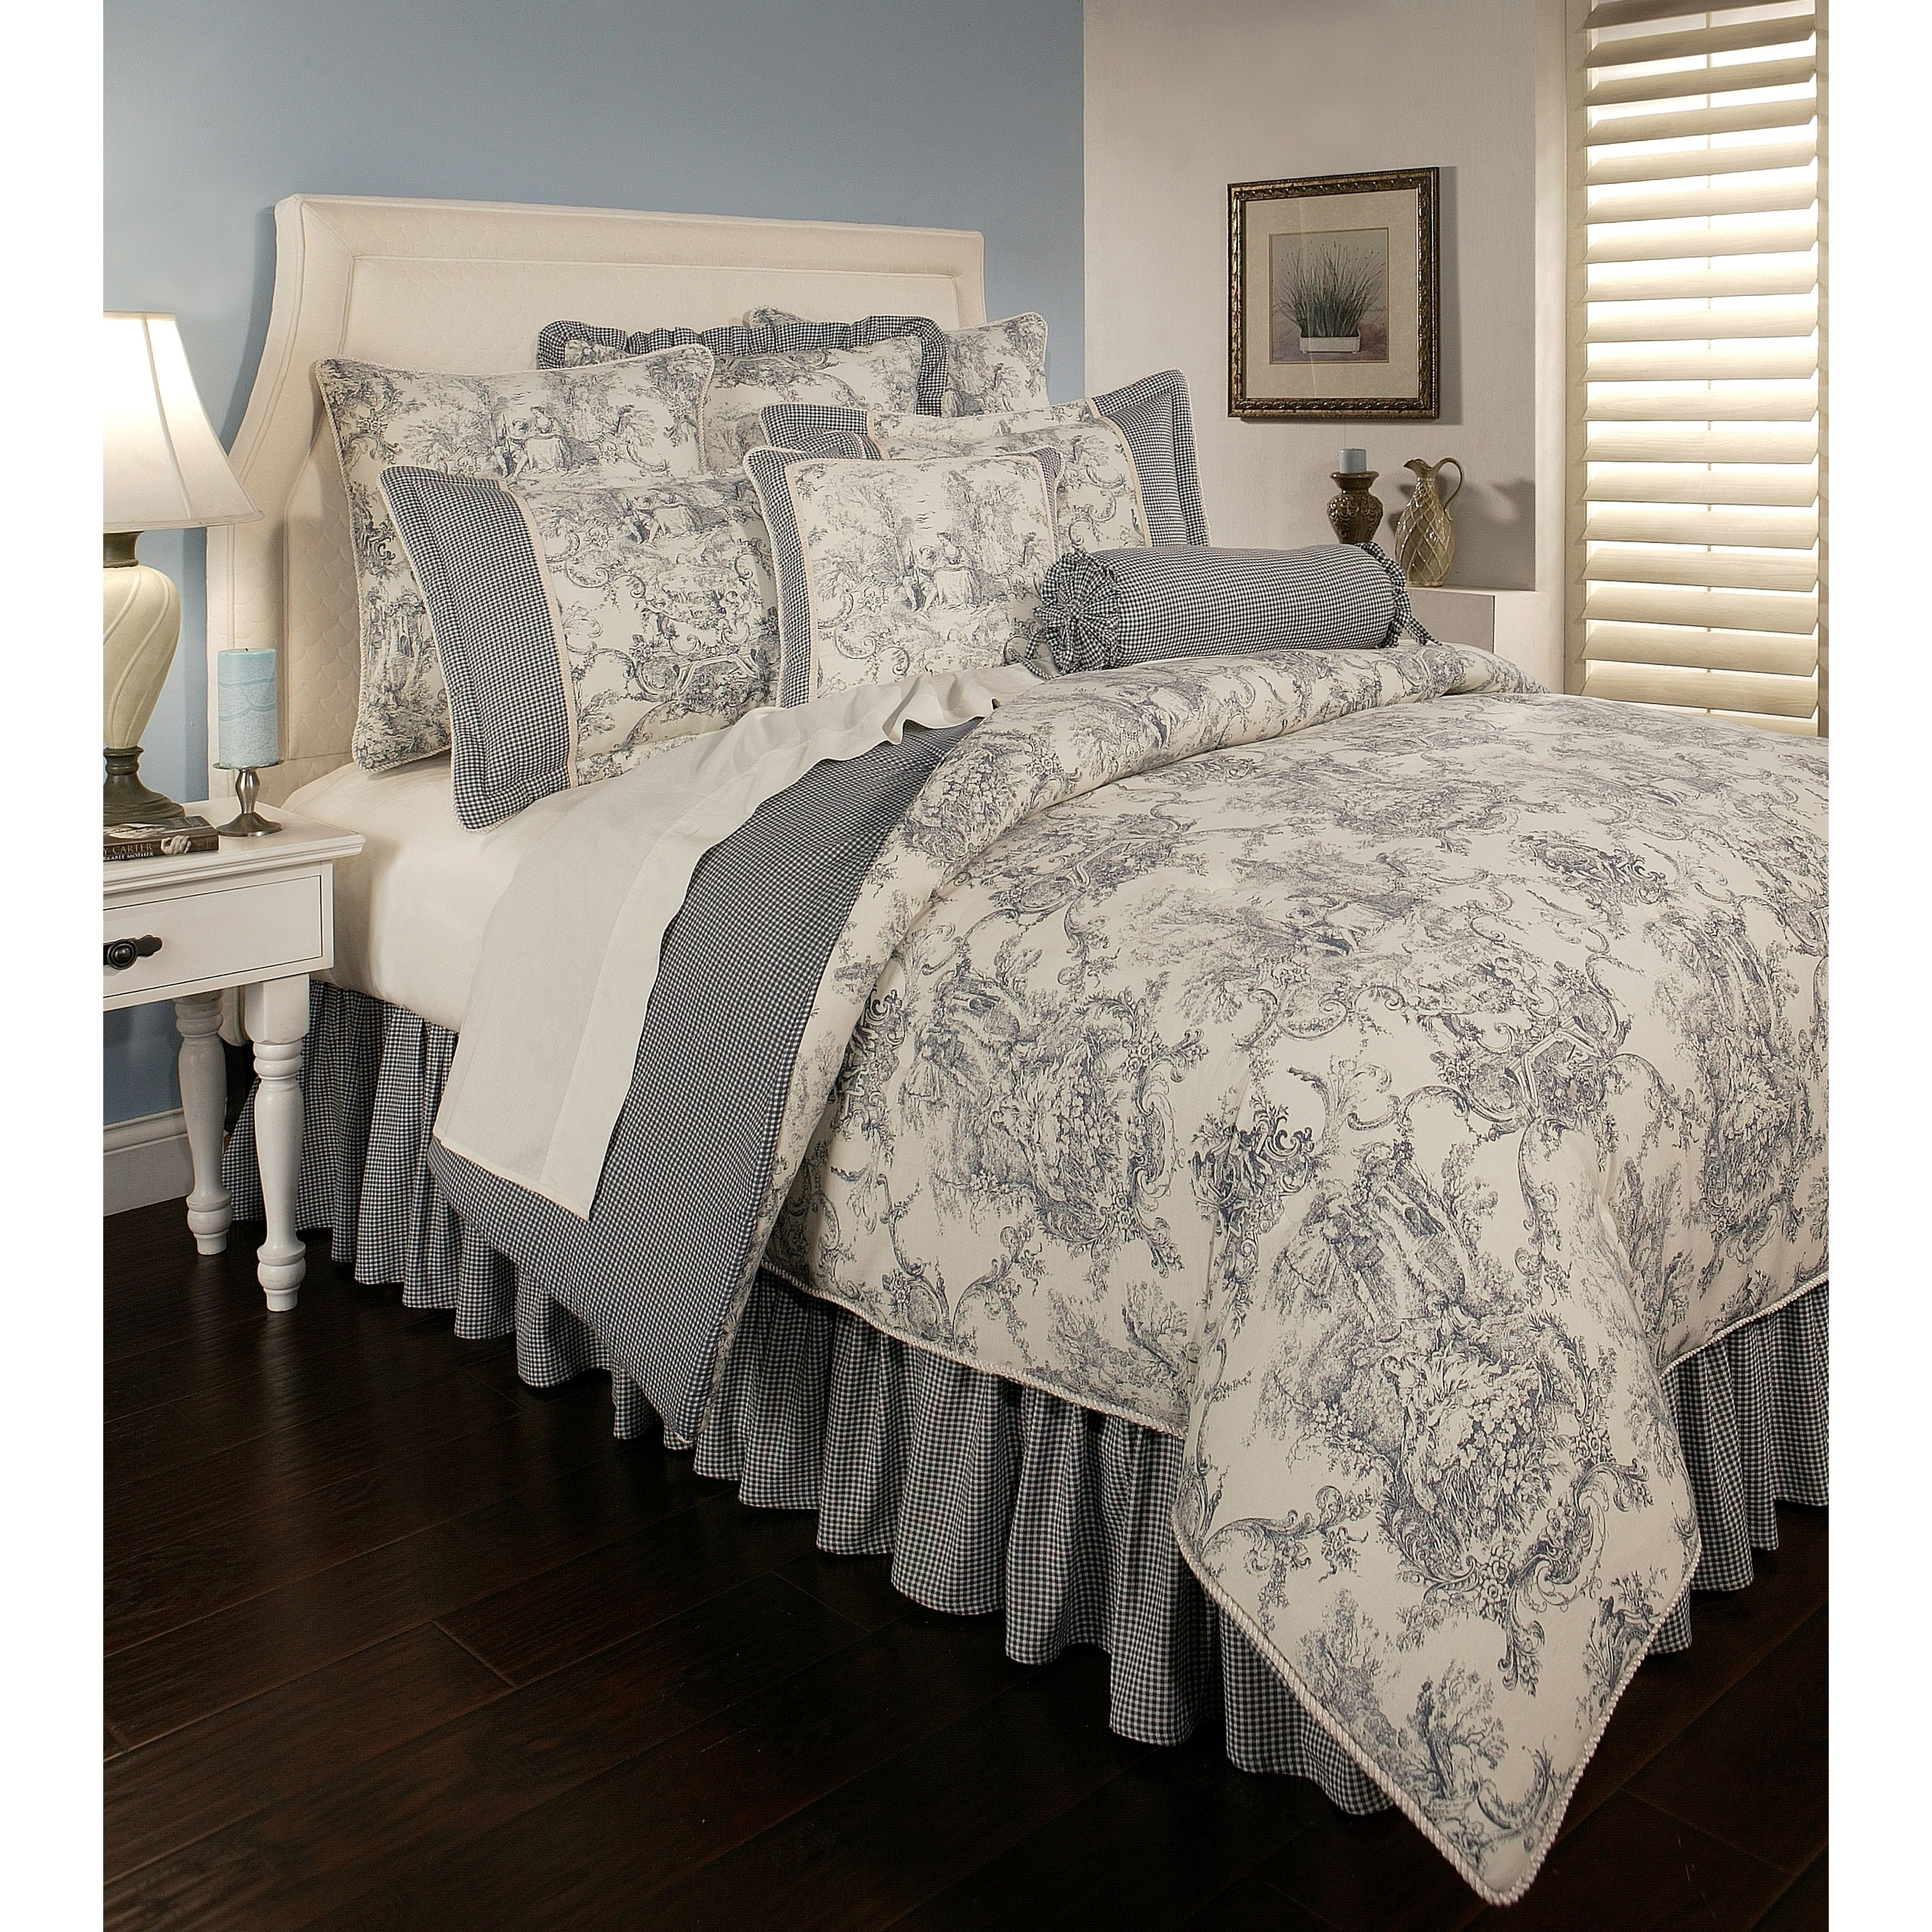 Pchf Country Toile Blue 6 Piece Comforter Set Overstock 18219853